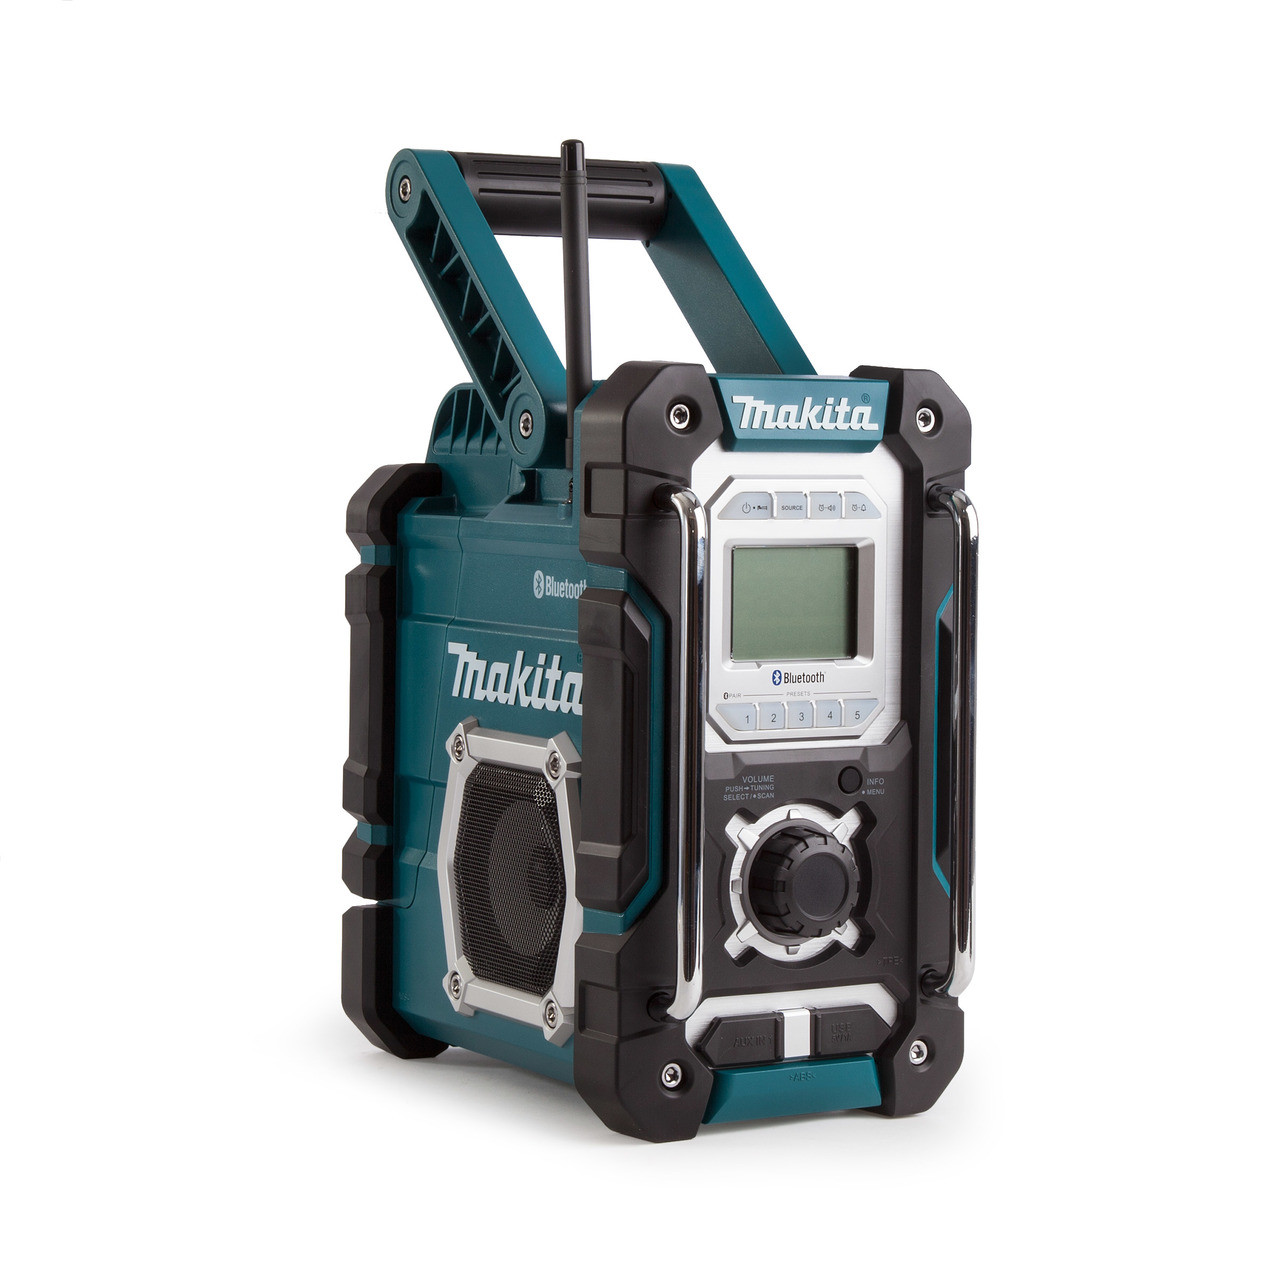 makita dmr108 jobsite bluetooth usb radio toolden. Black Bedroom Furniture Sets. Home Design Ideas